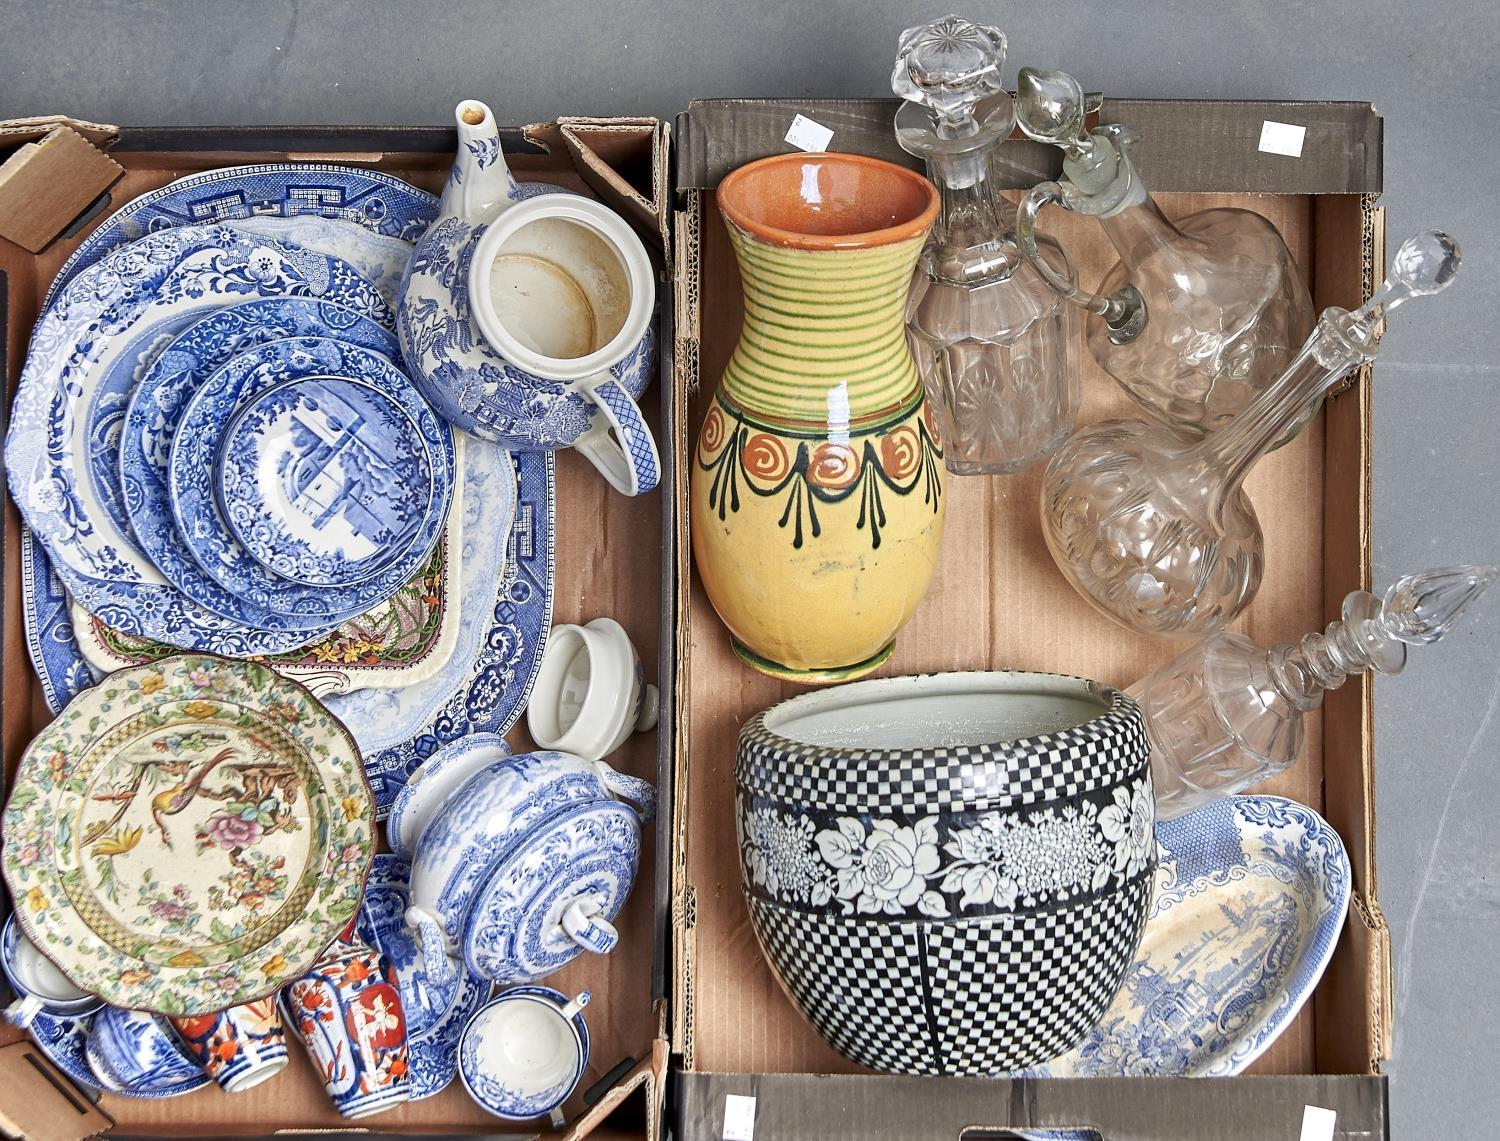 MISCELLANEOUS CERAMICS AND GLASSWARE, TO INCLUDE THREE VICTORIAN / EDWARD CUT GLASS DECANTERS AND